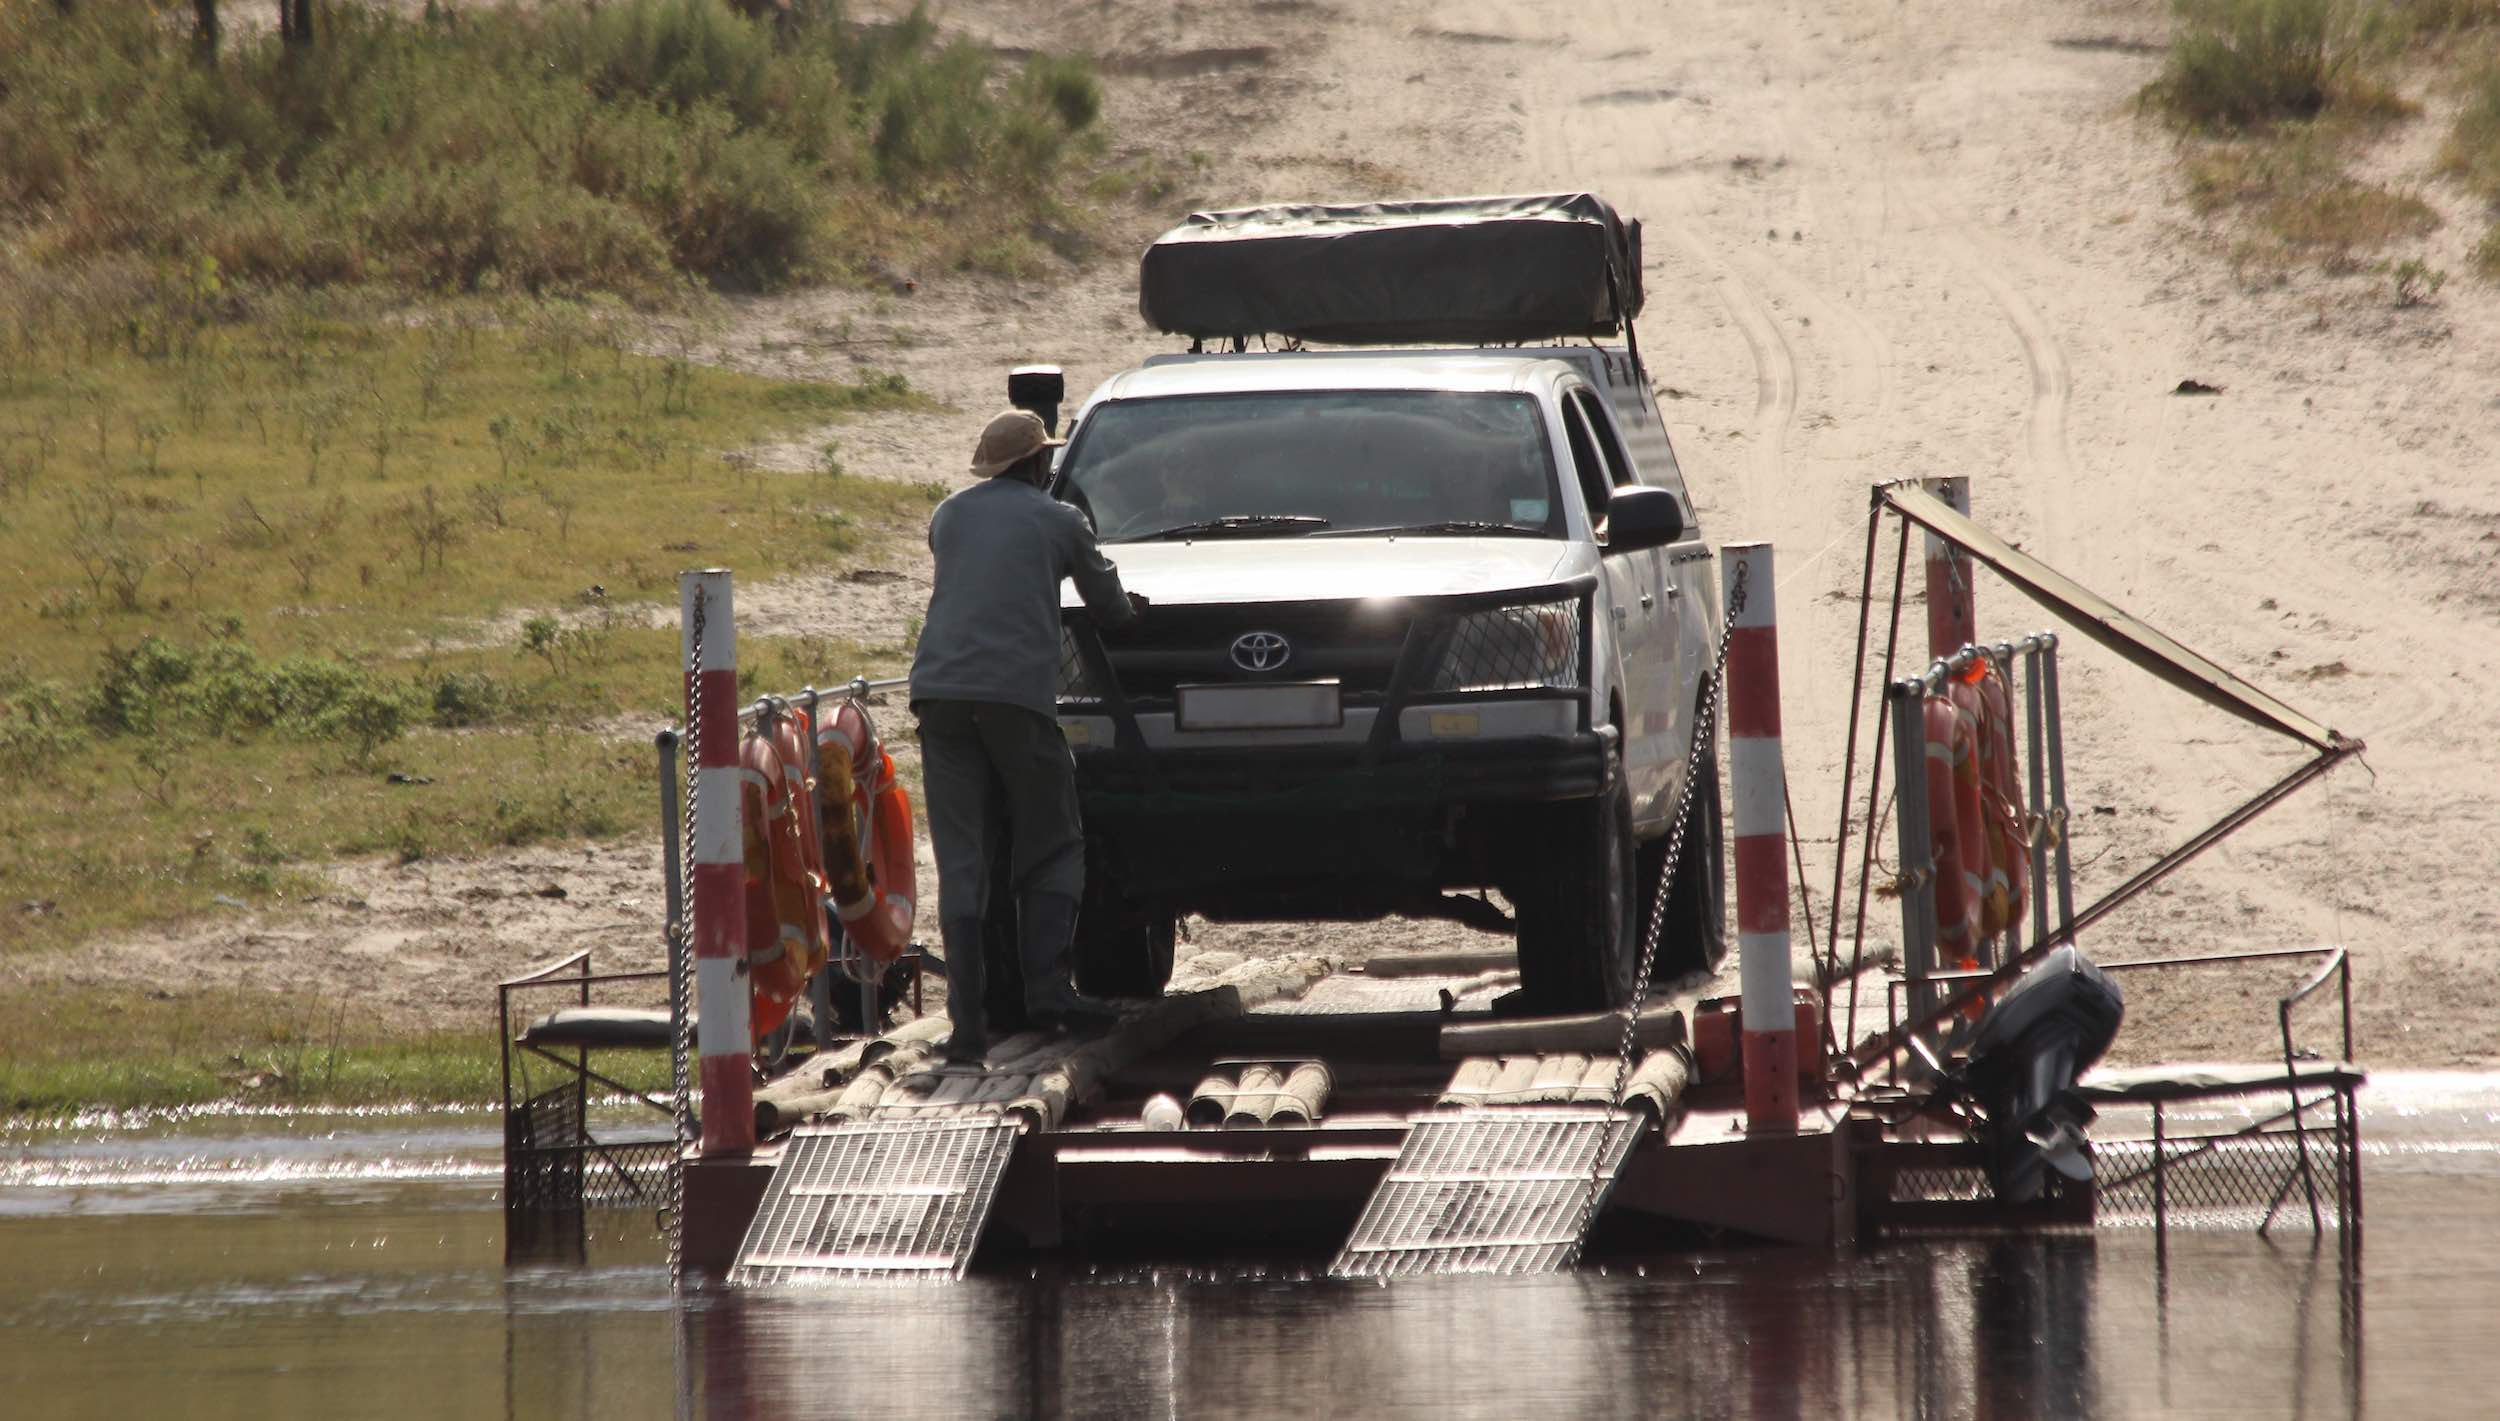 A Toyota bakkie prepares to cross the Boteti river on the local ferry.